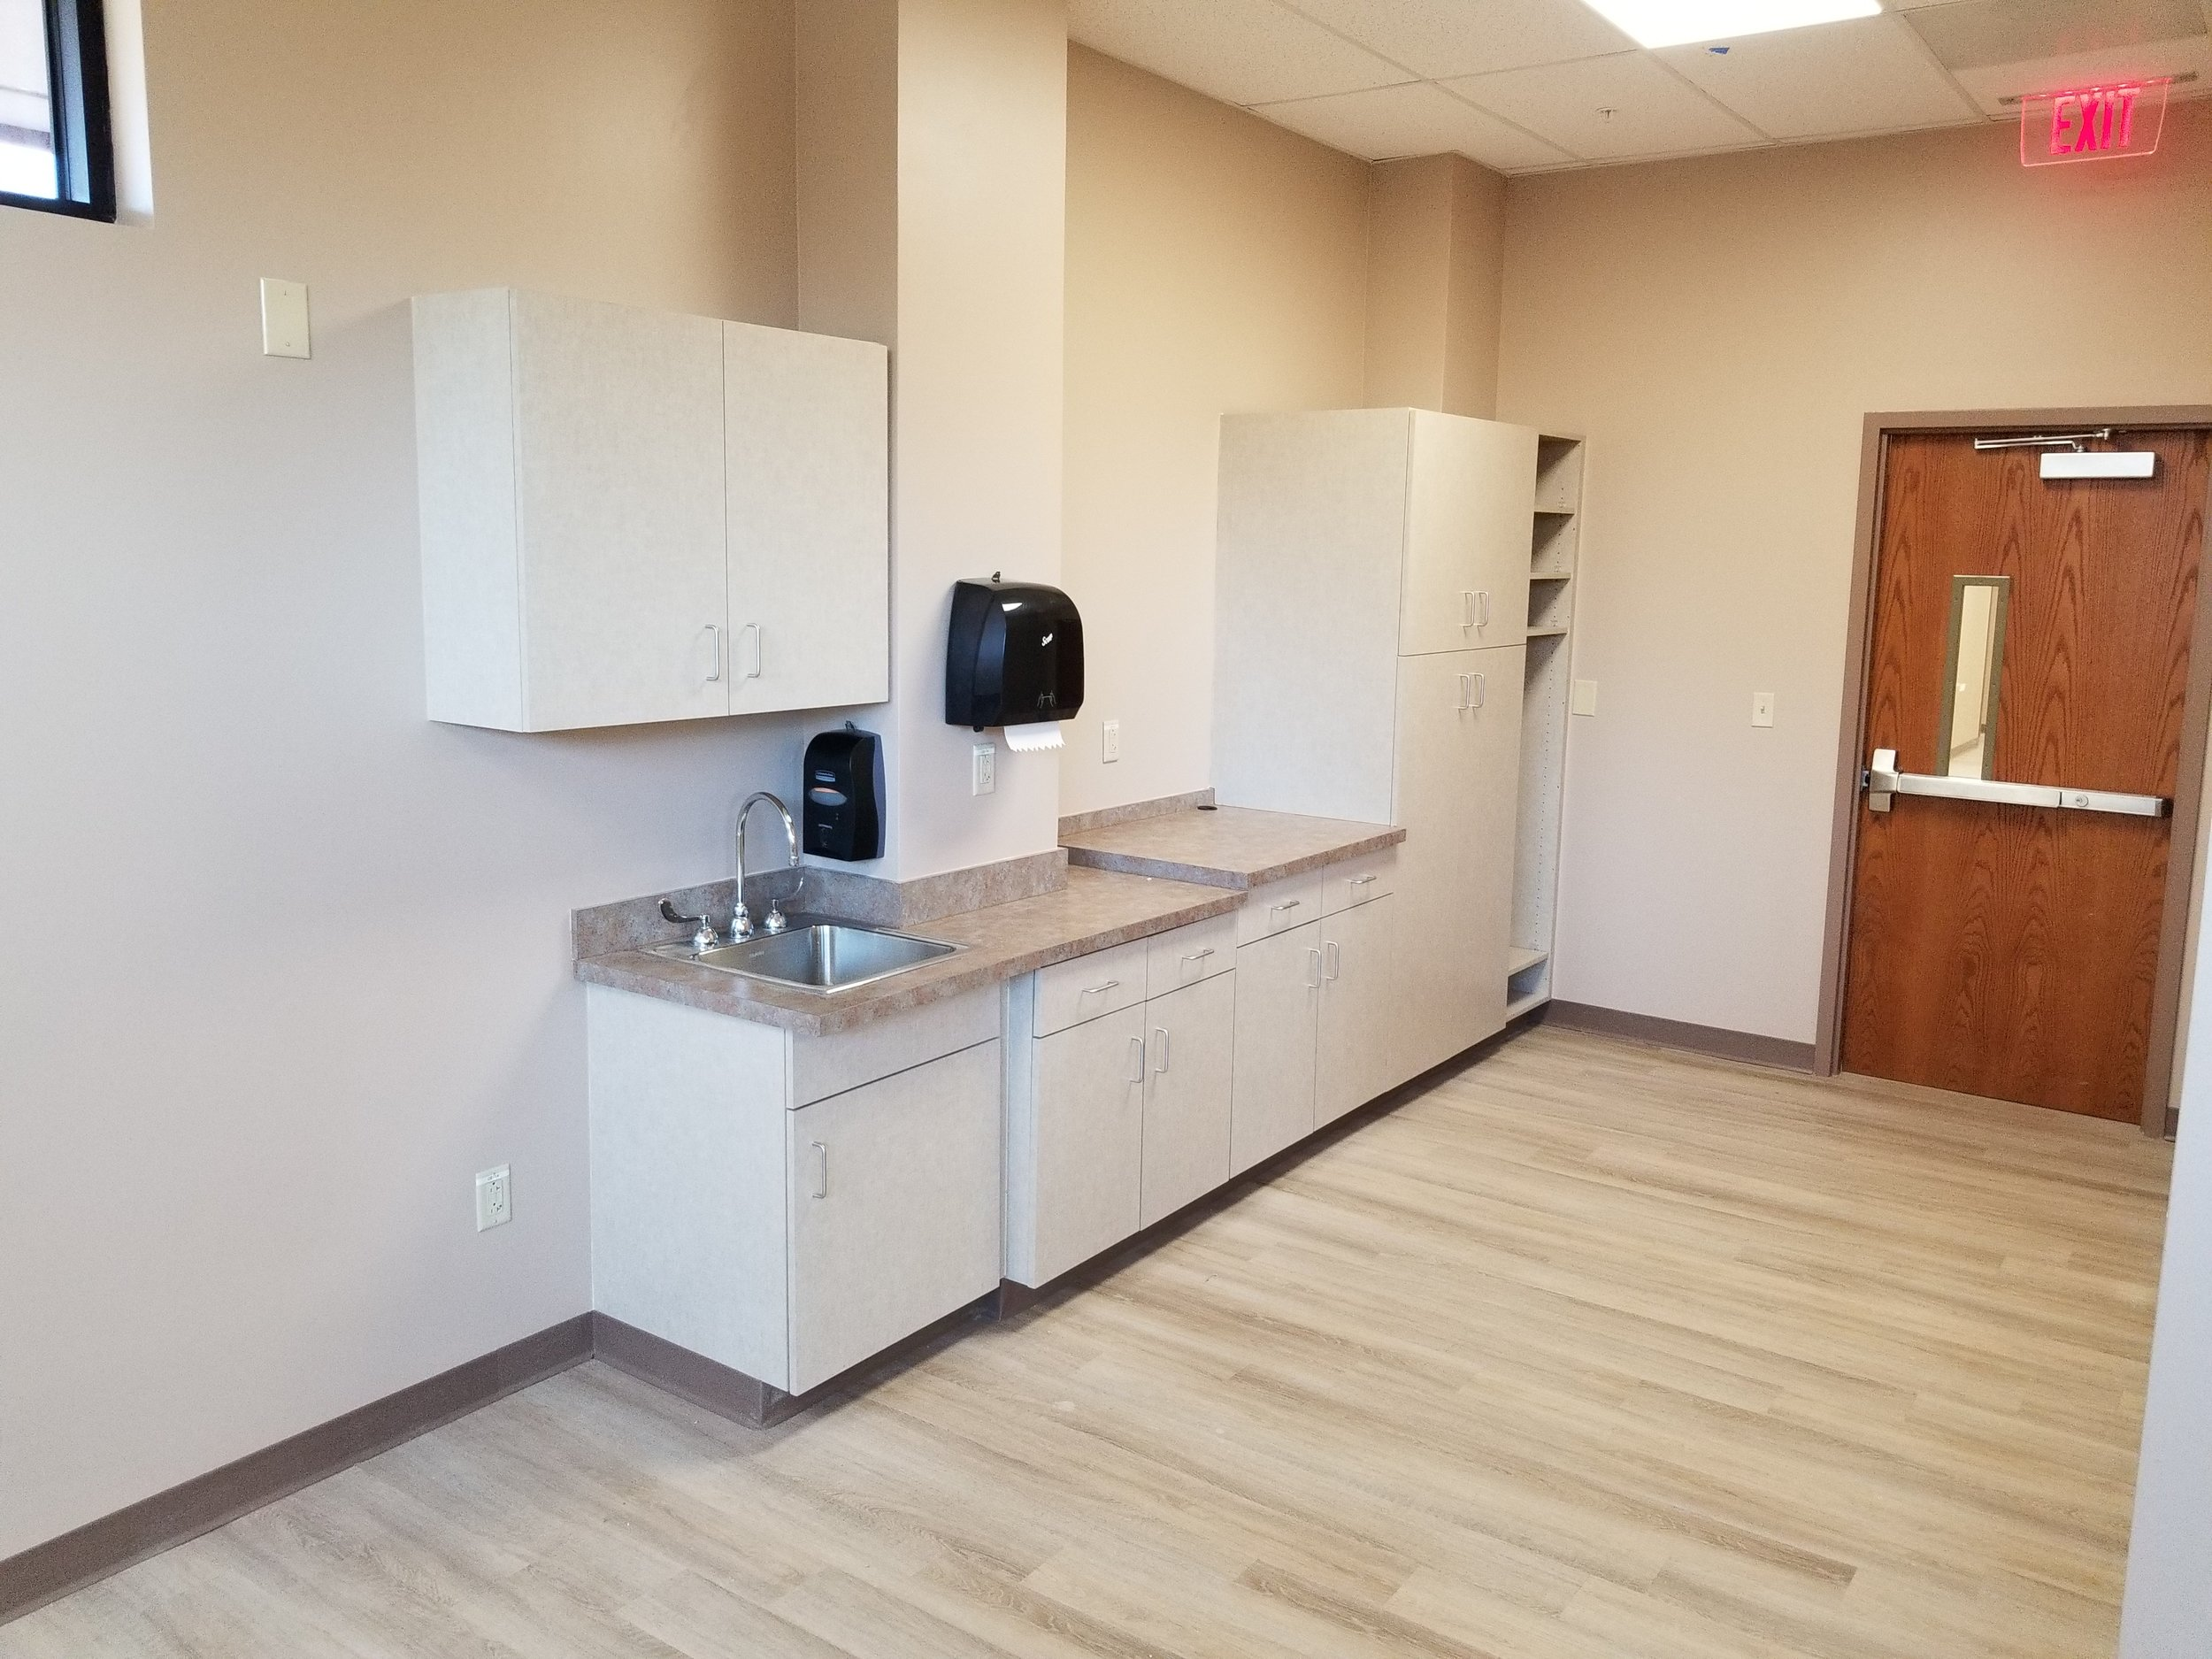 New Triage Room, with New Cabinetry, Sinks, Flooring